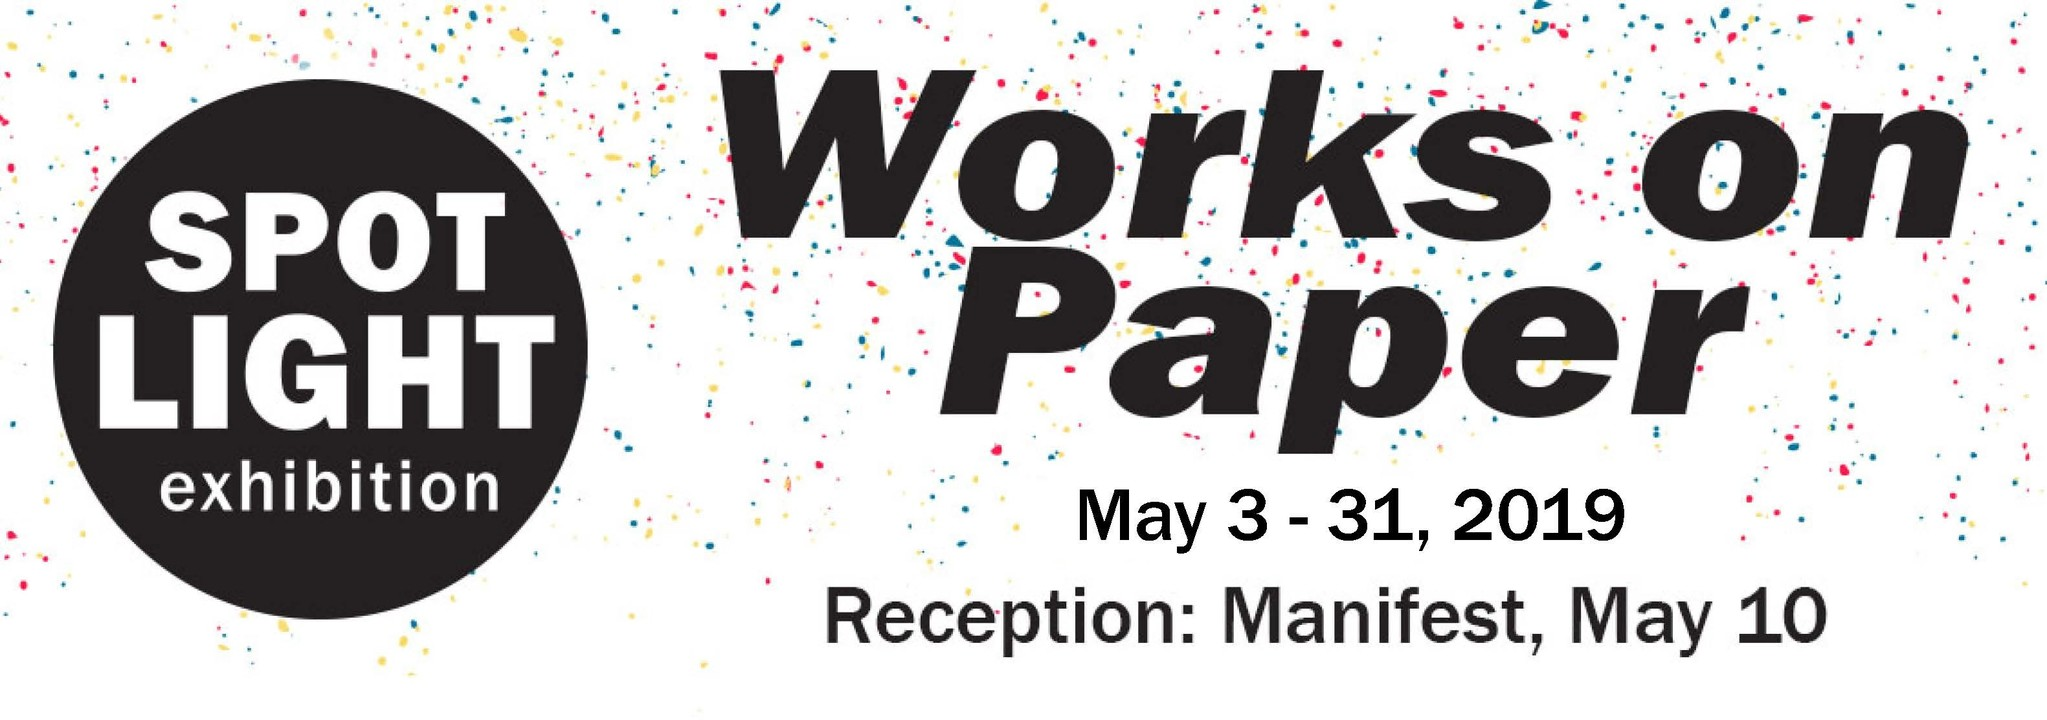 Spotlight Exhibition: Works on Paper 2019